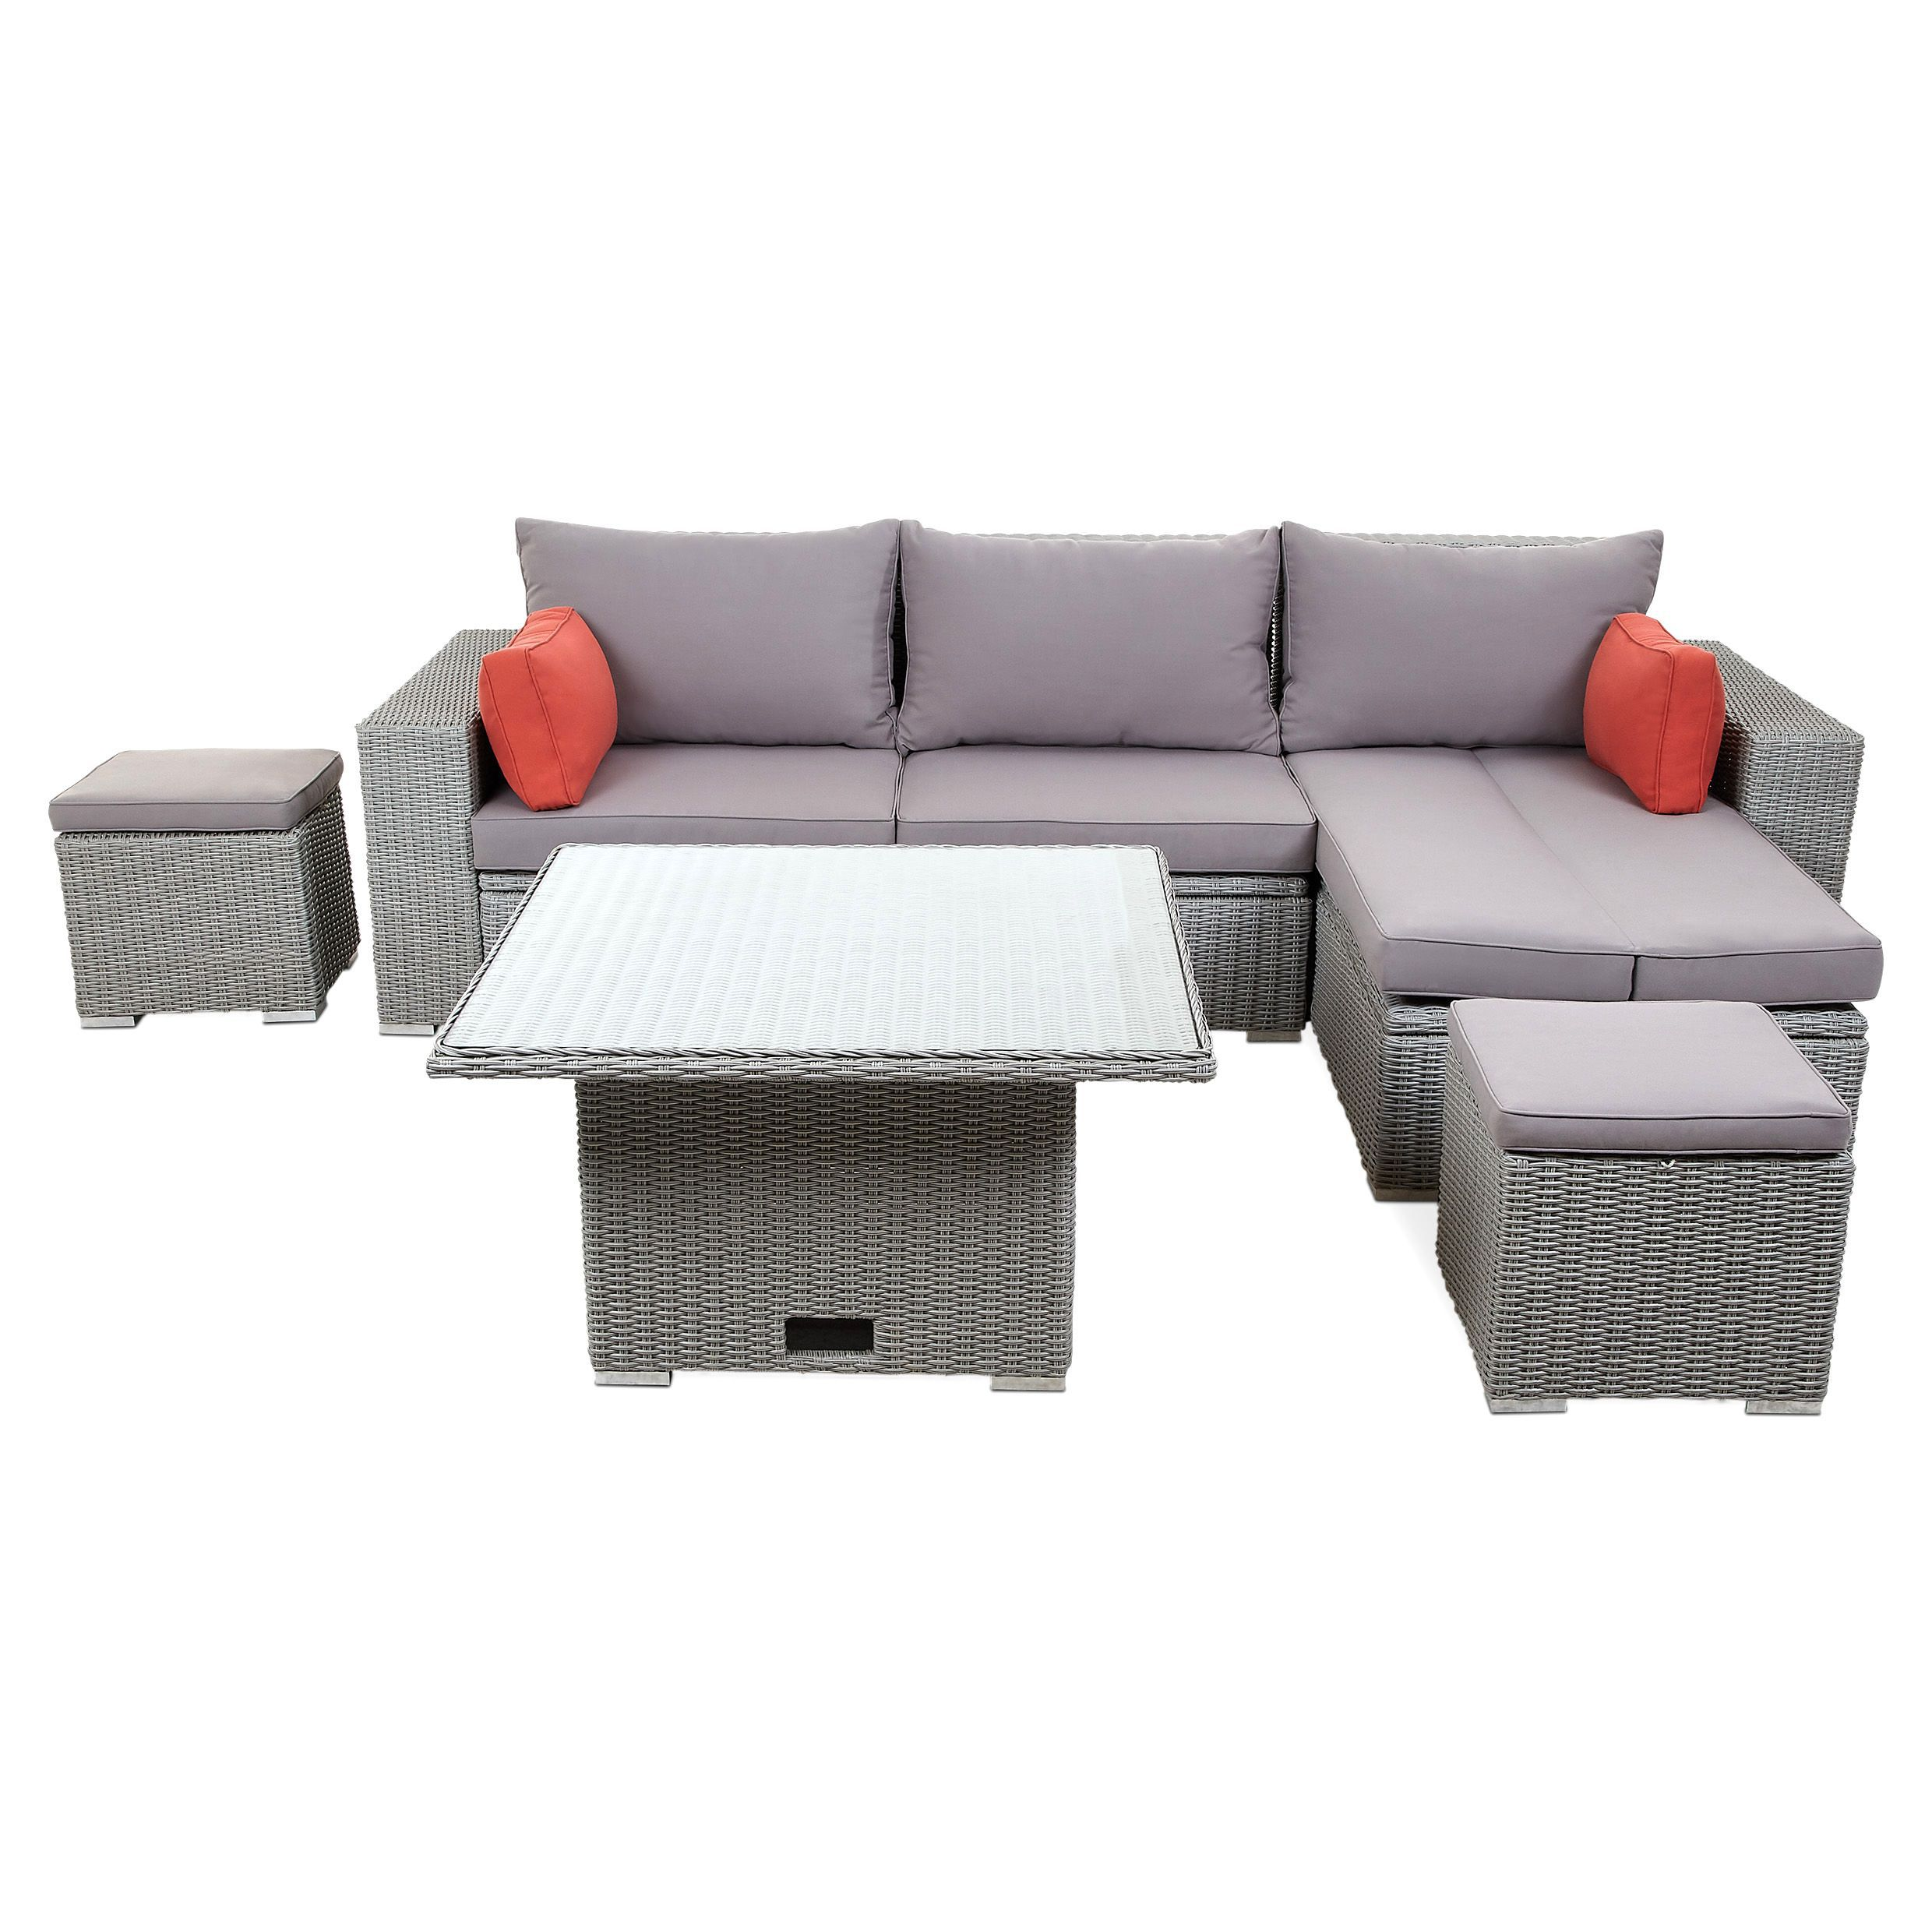 Rattan Effect Recliner Sofa Gabbs 4 Seater Sofa Set Departments Diy At B Andq